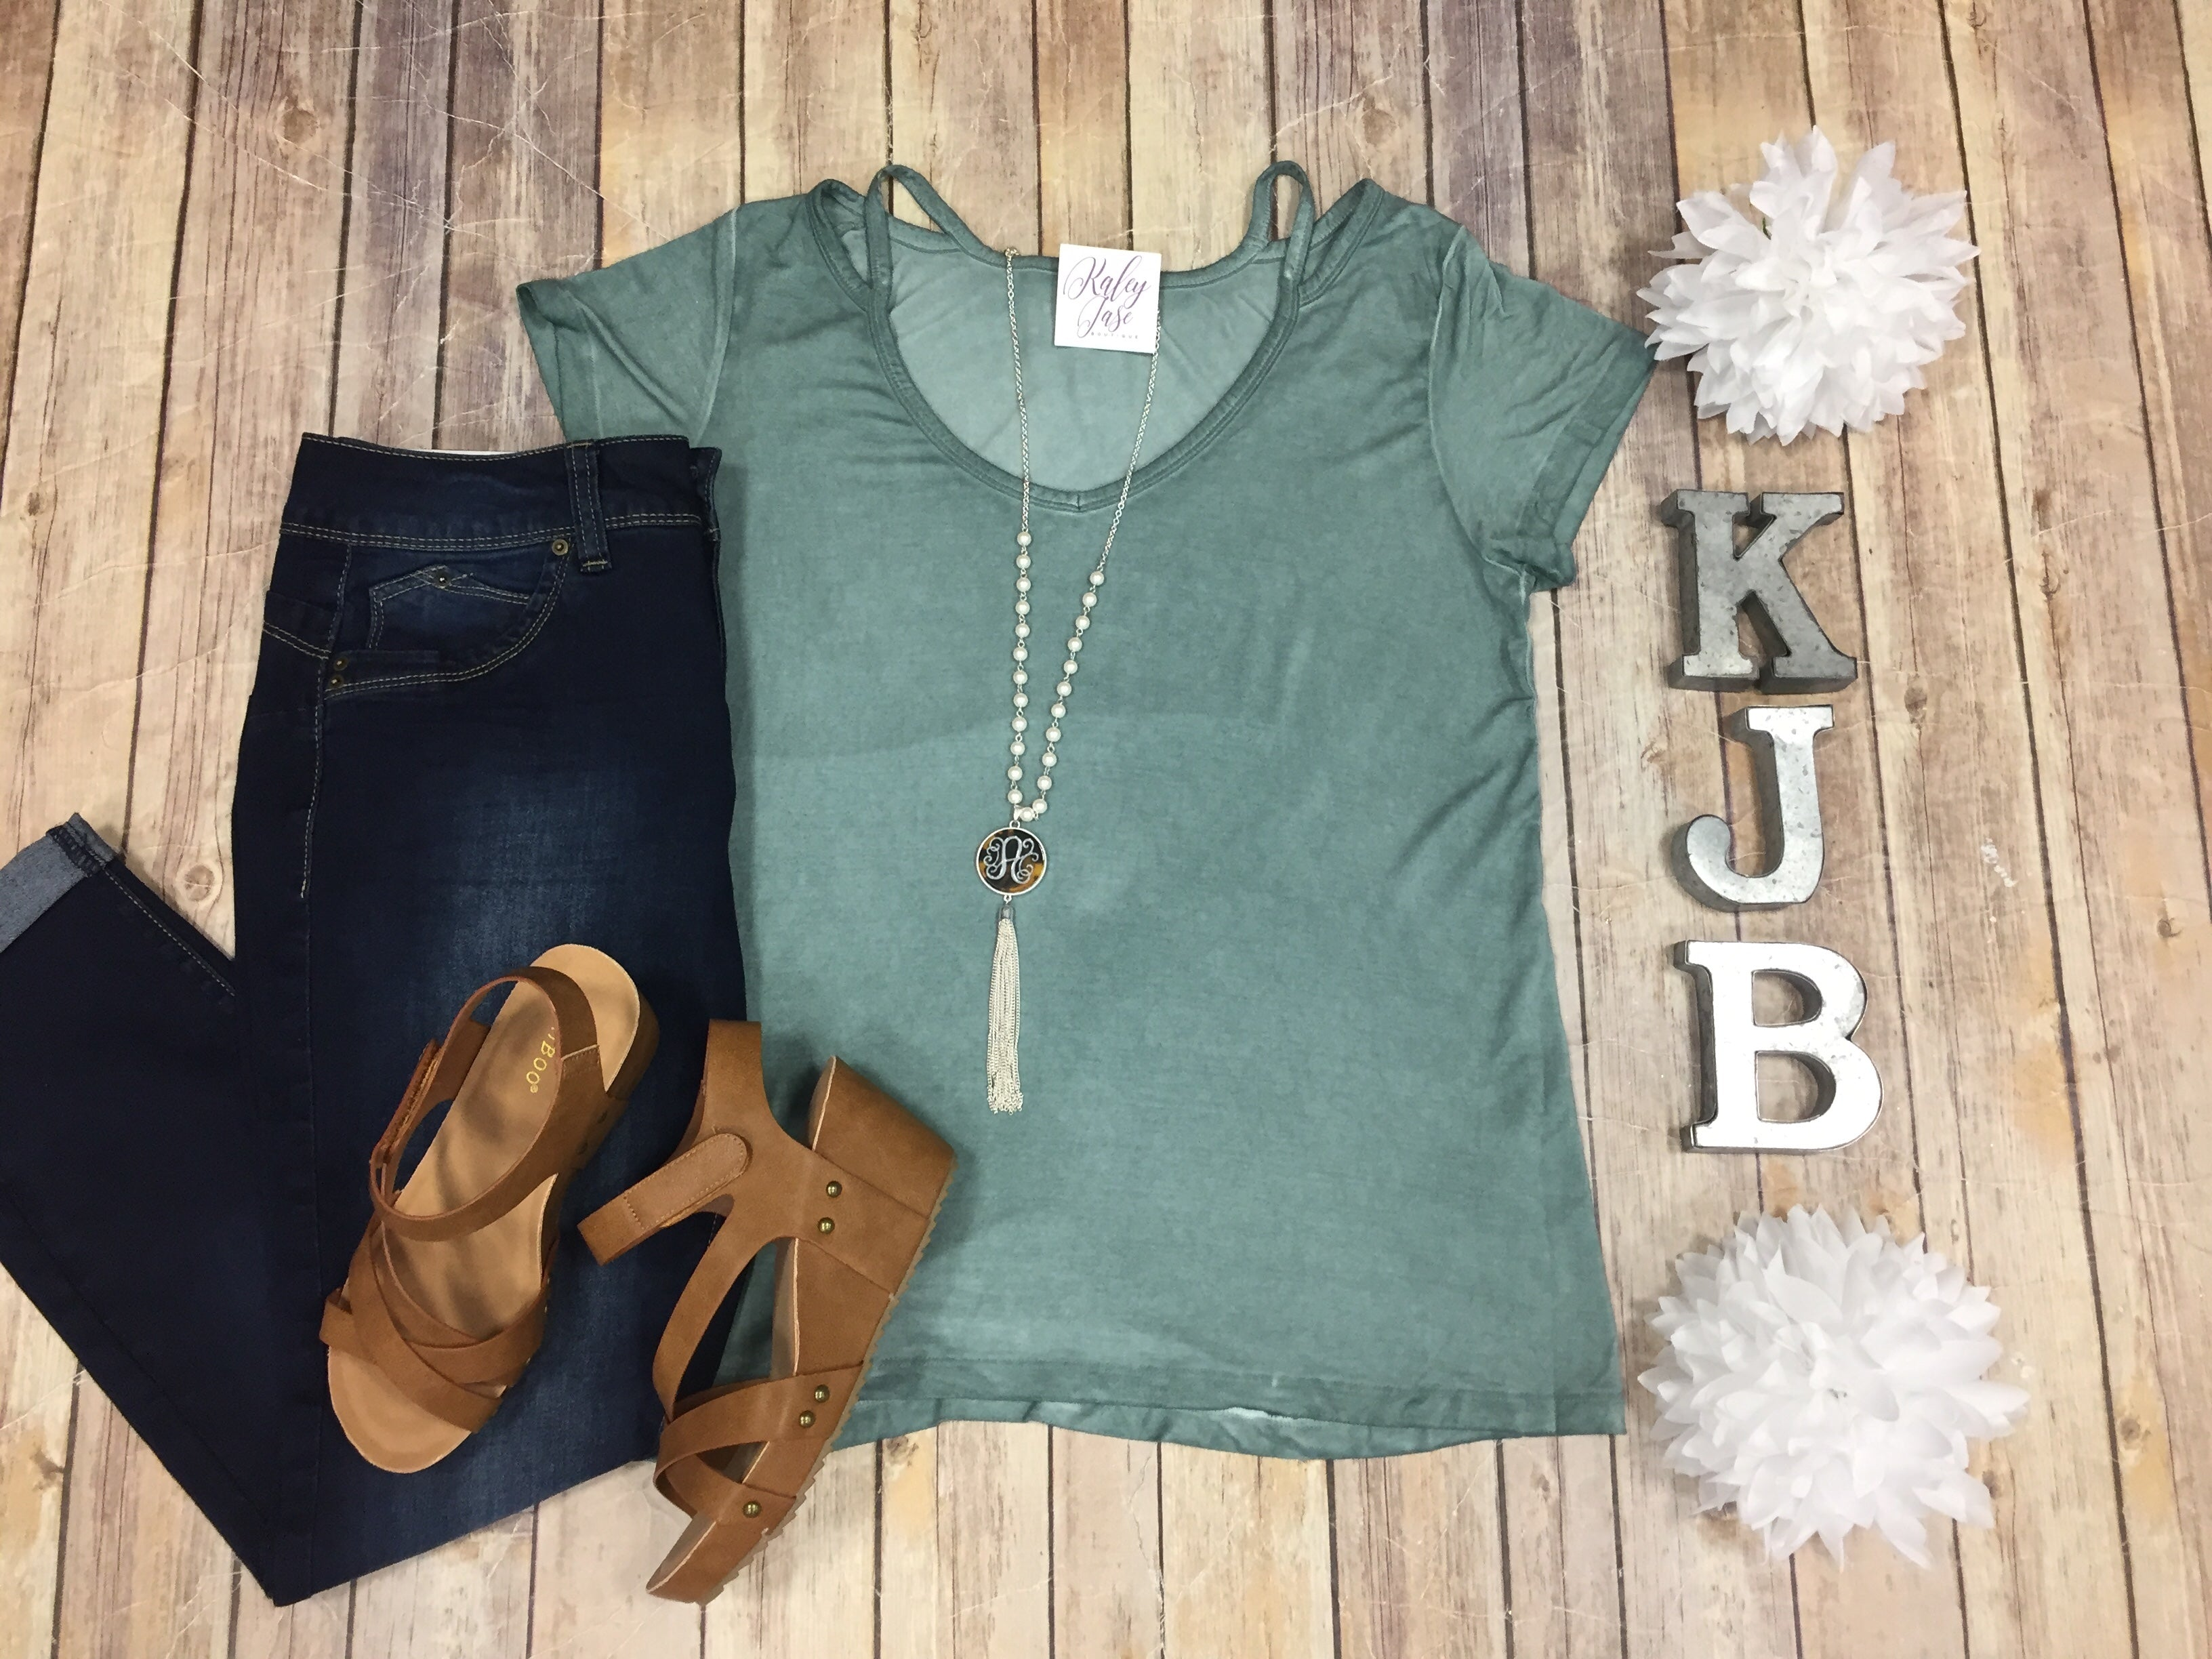 Mineral Washed Teal Cutout Tee